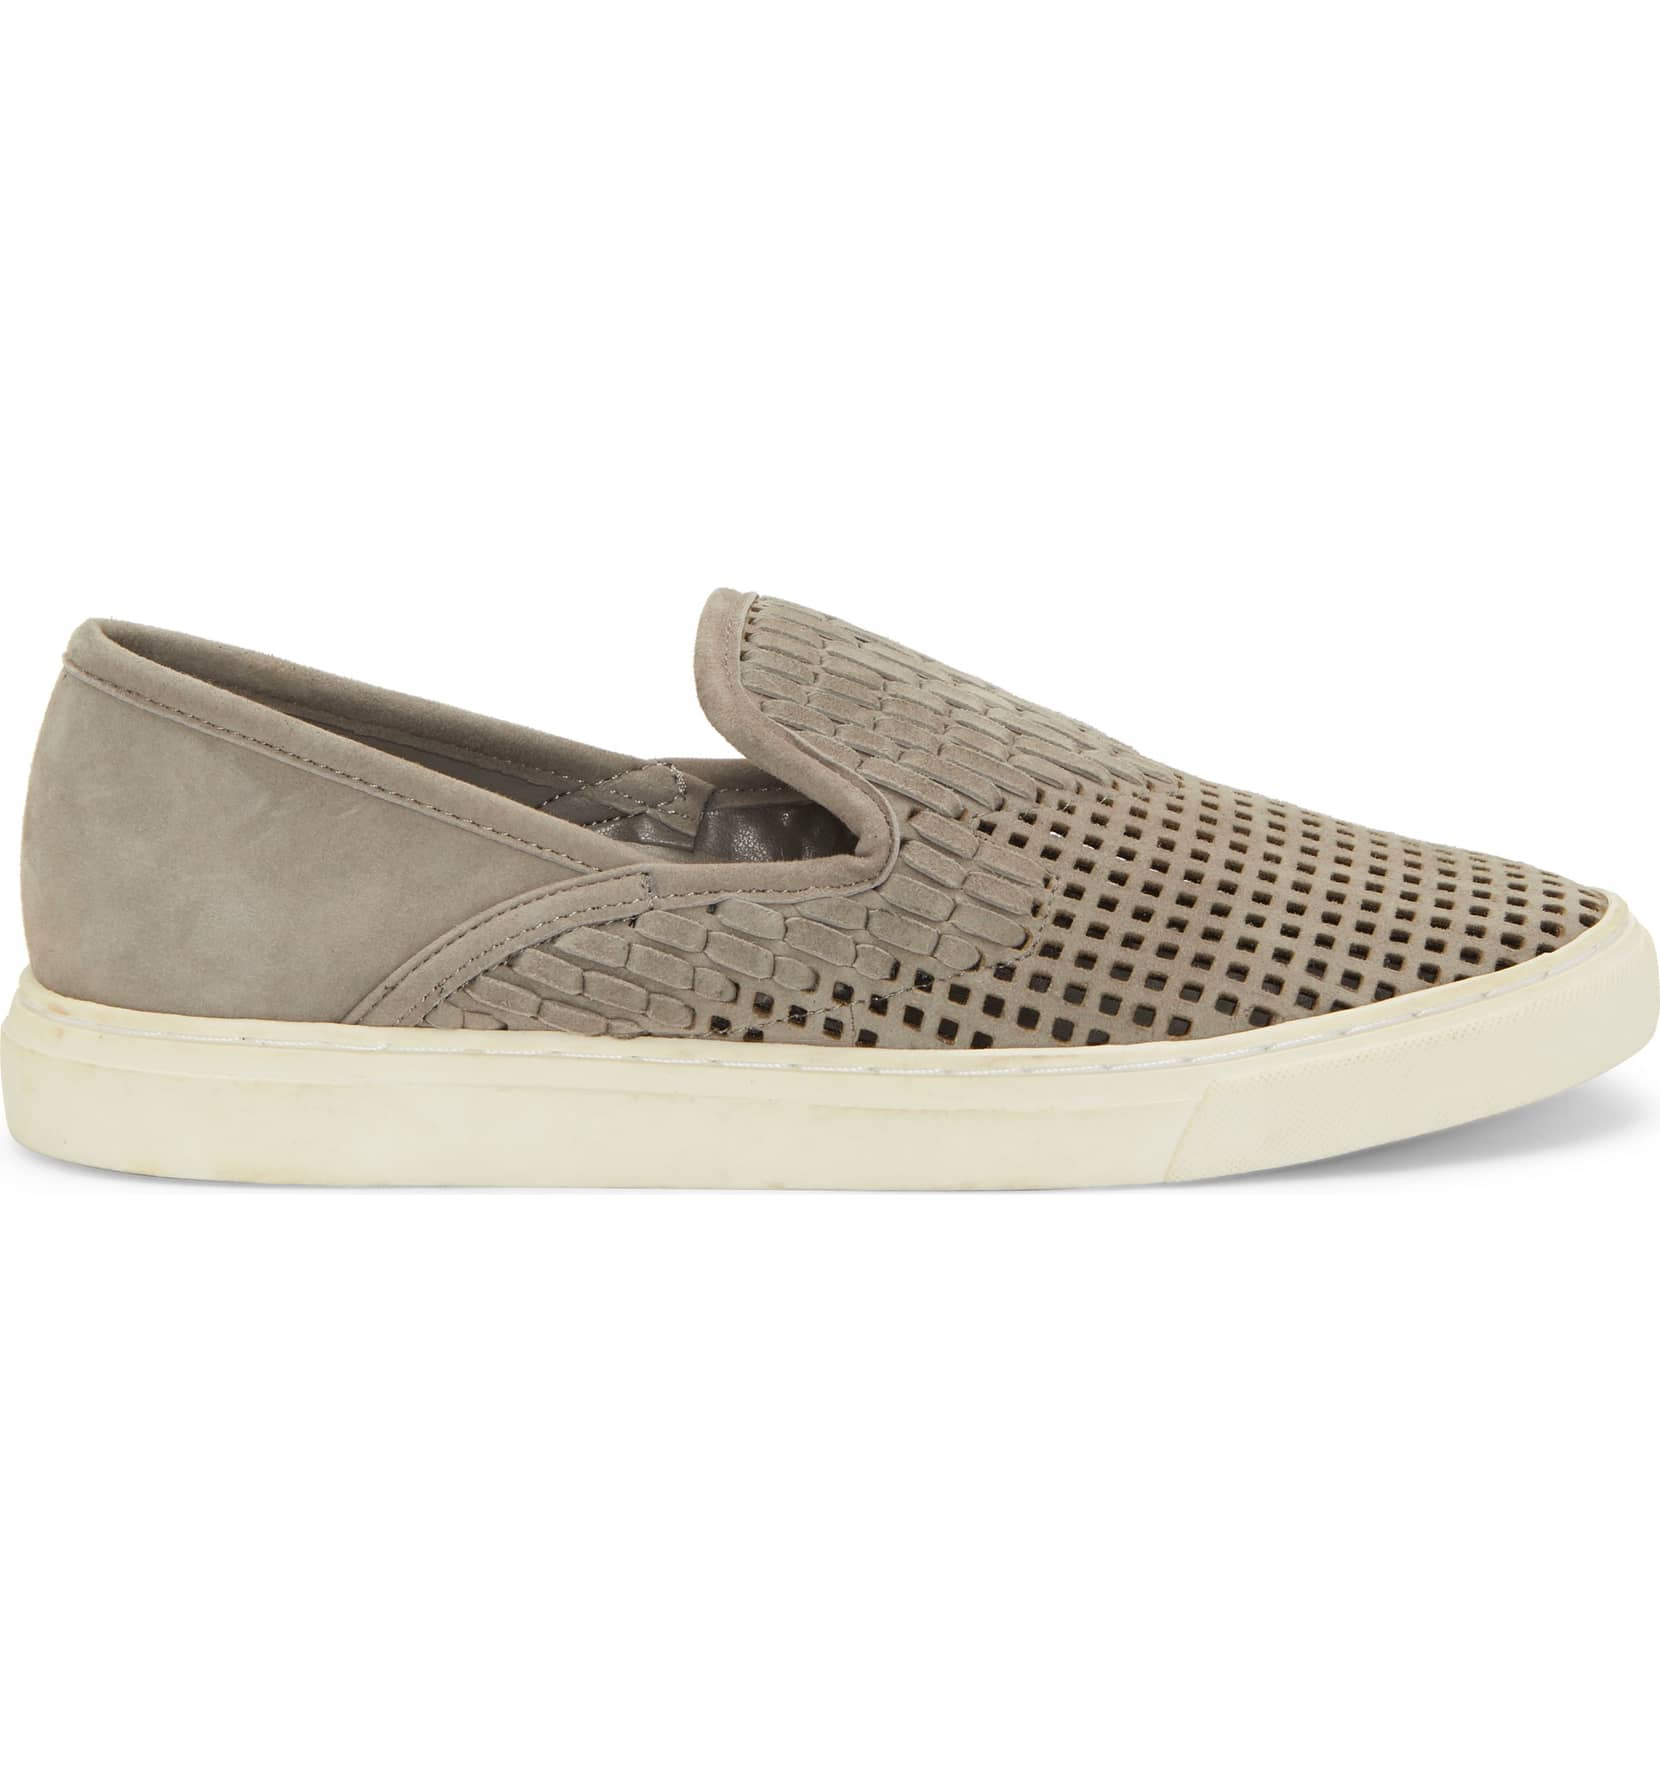 Vince-Camuto-Bristie-Storm-Grey-Leather-Woven-White-Sole-Slip-On-Sneakers thumbnail 32